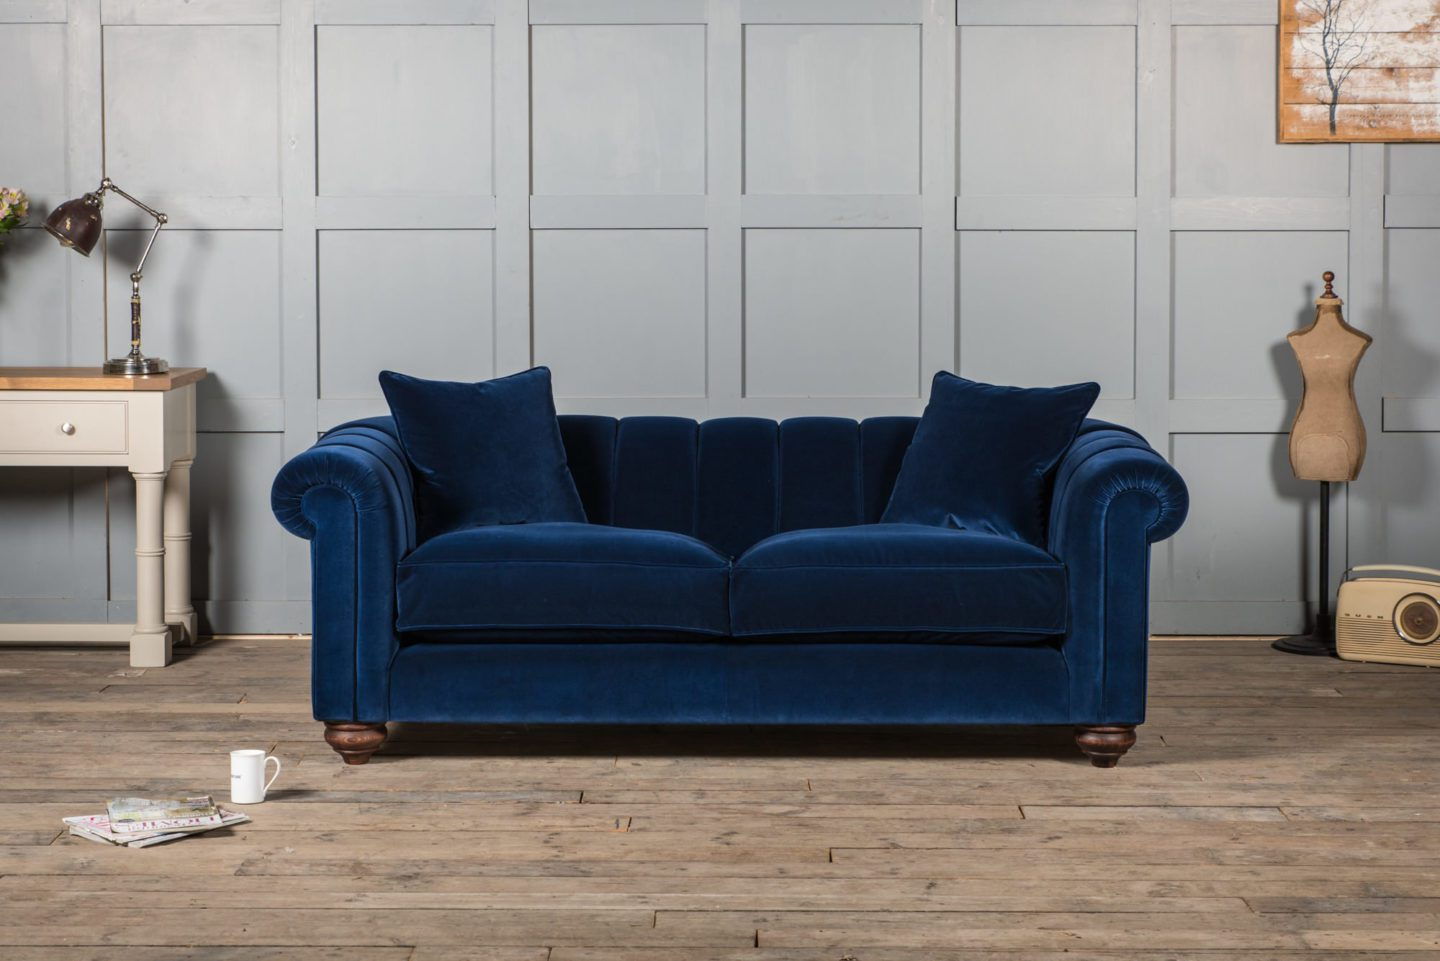 Authentic Furniture – Bringing Velvet into Your Home